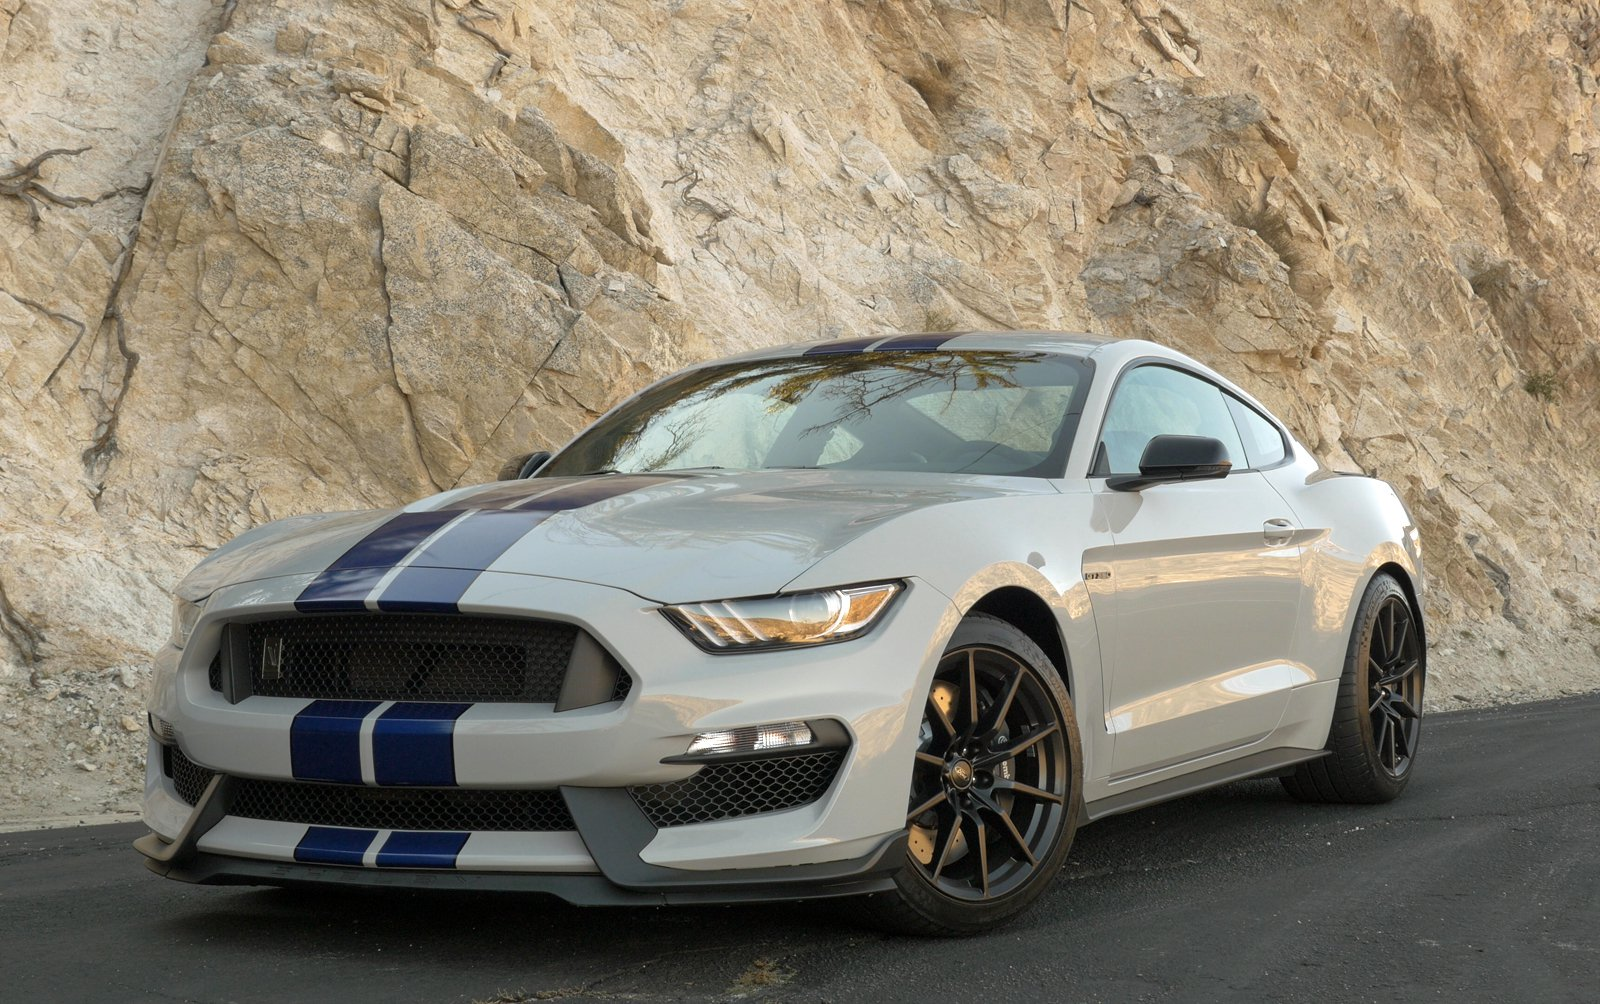 2016 Ford Mustang Shelby GT350 photo - 1